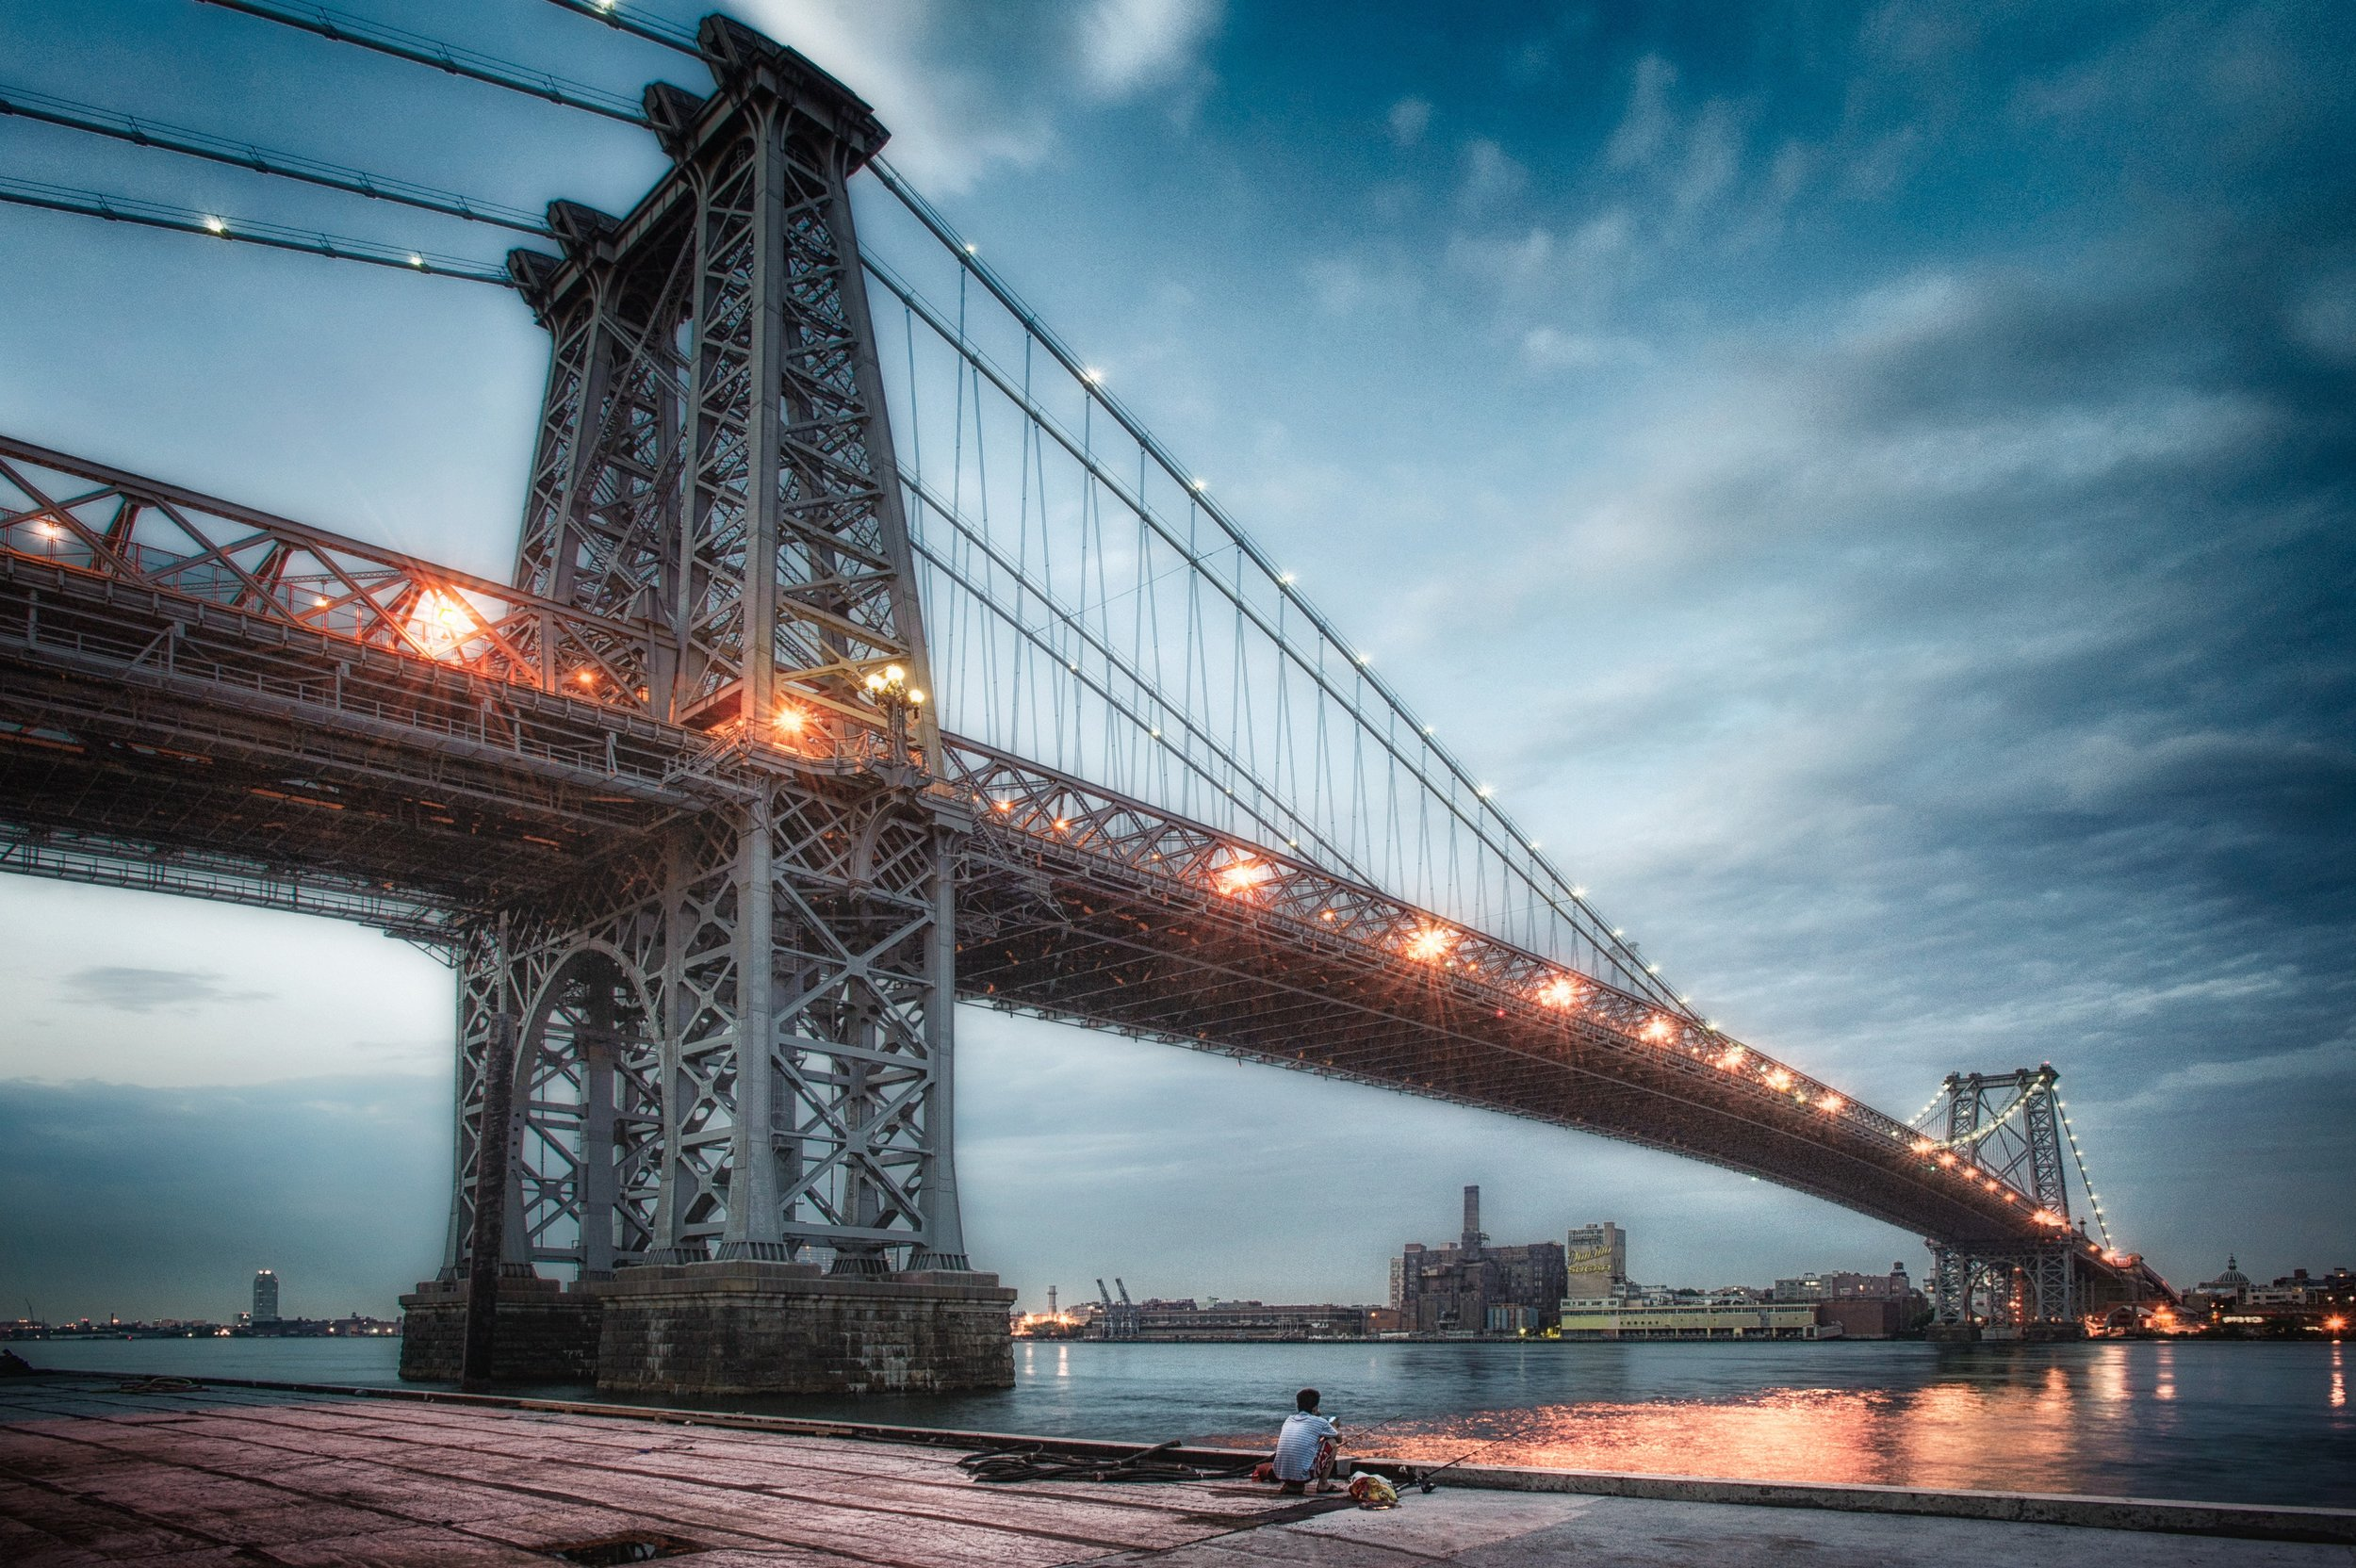 The Williamsburg Bridge stretches over the East River, connecting Lower Manhattan to Williamsburg, Brooklyn, and carries the J, M and Z subway lines, a bike path and a walkway, in addition to its eight lanes of vehicle capacity